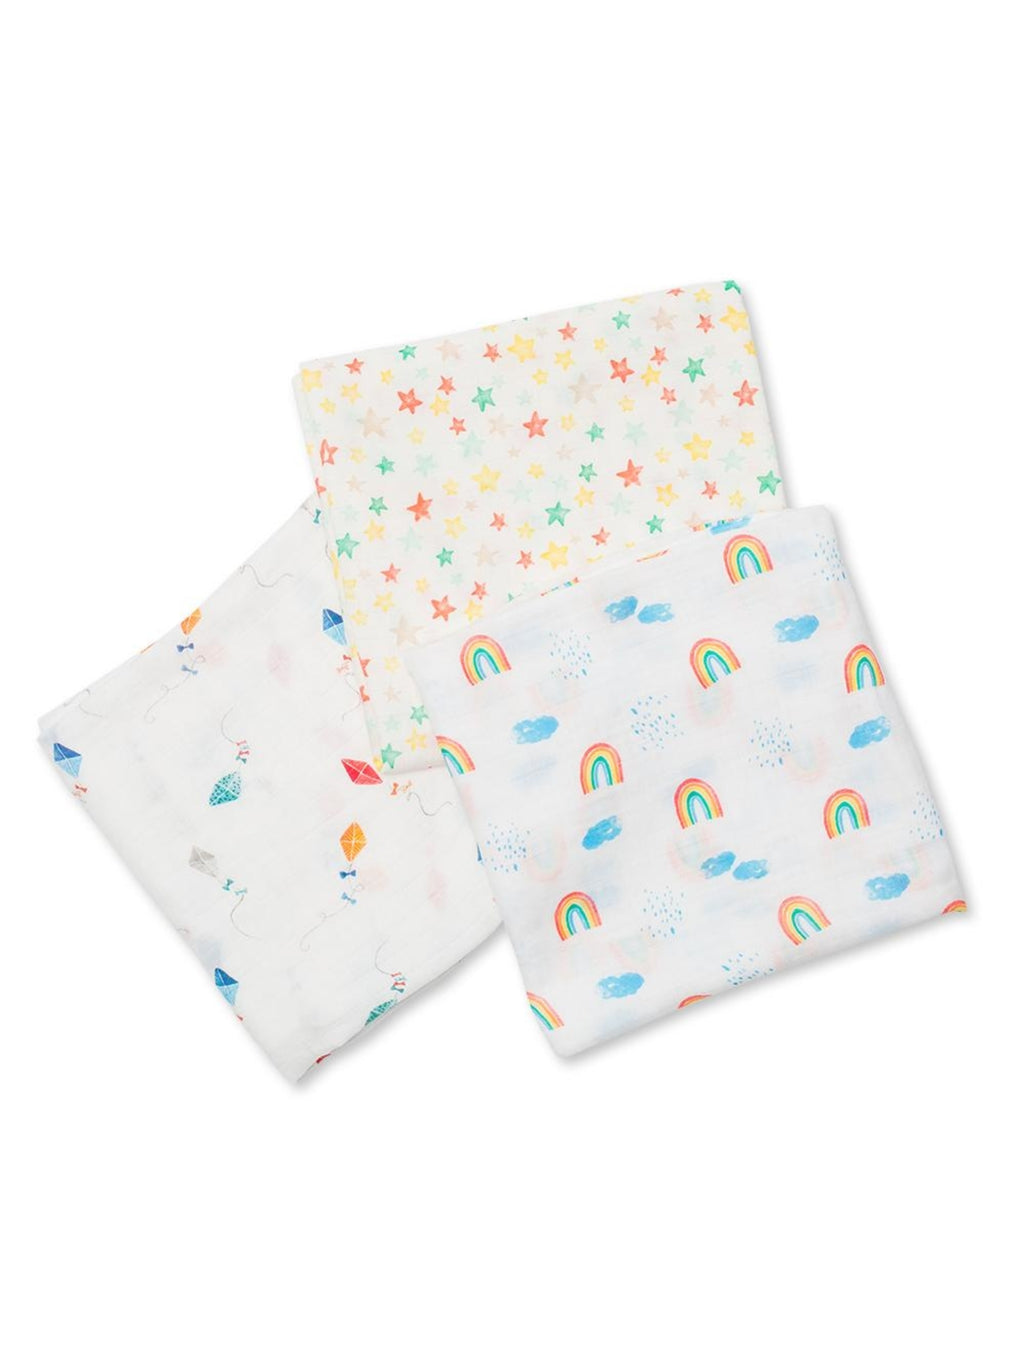 3-Pack Swaddle - High in the Sky